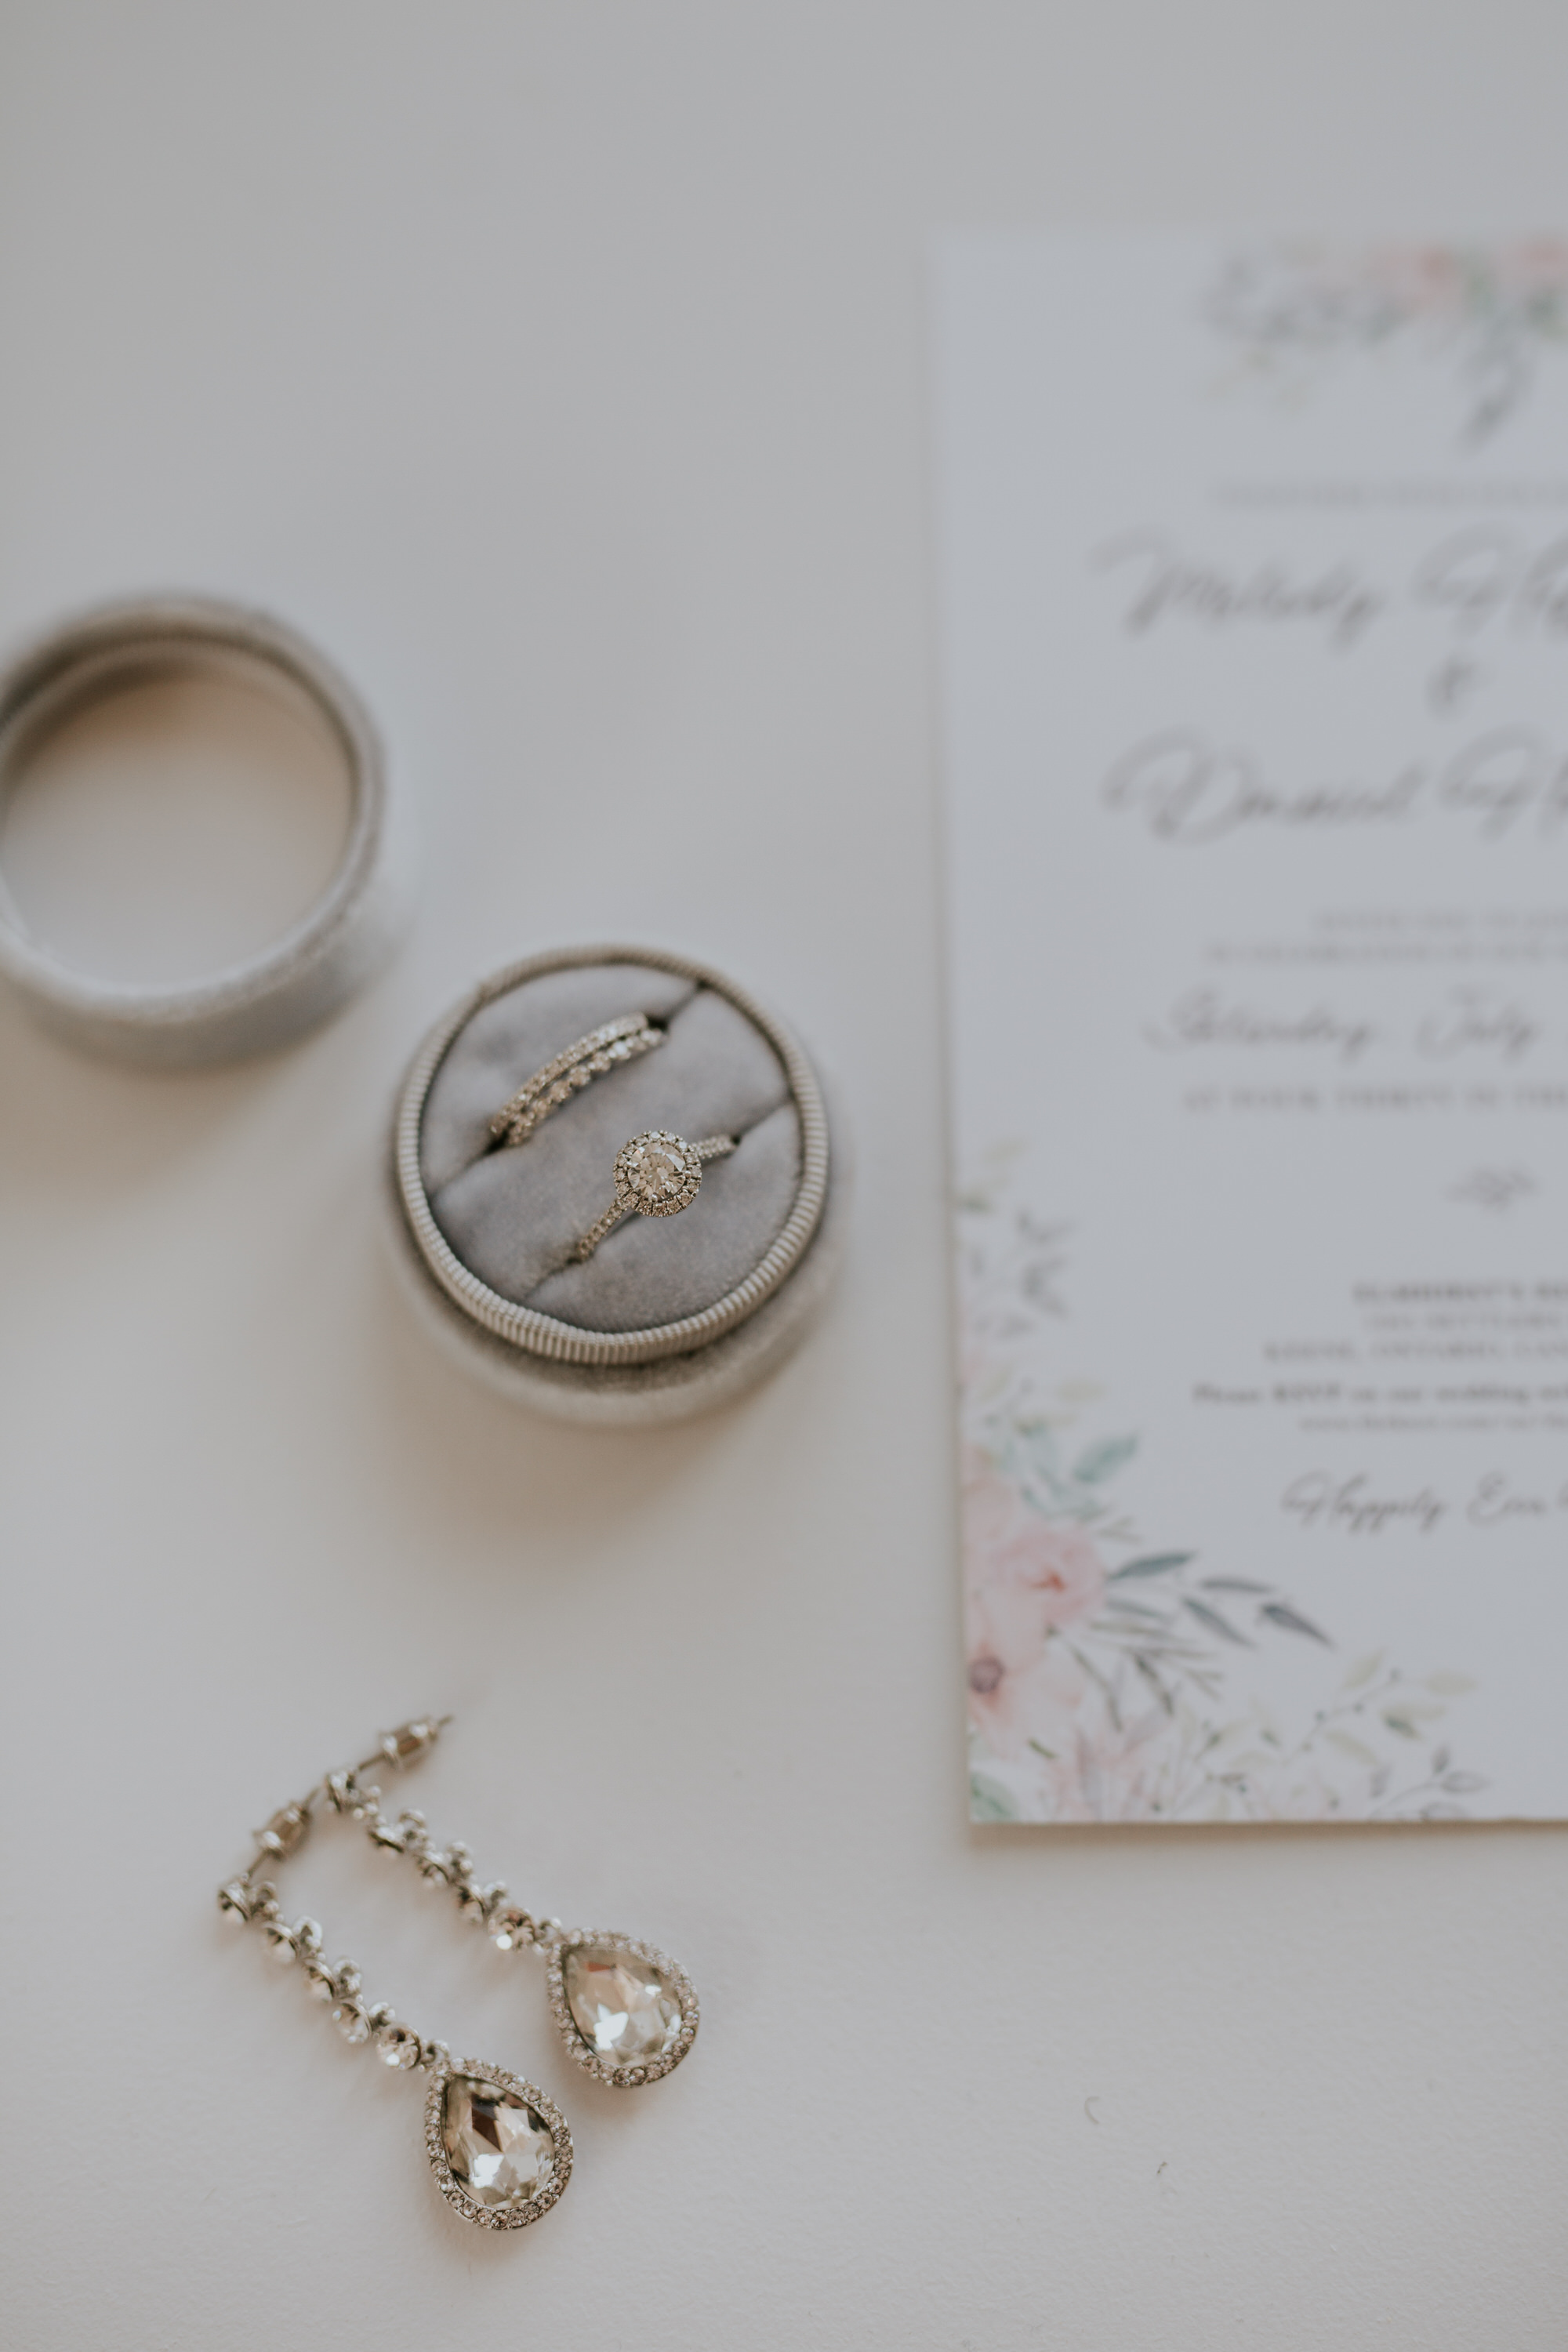 Elmhirst Resort Wedding - Bridal details